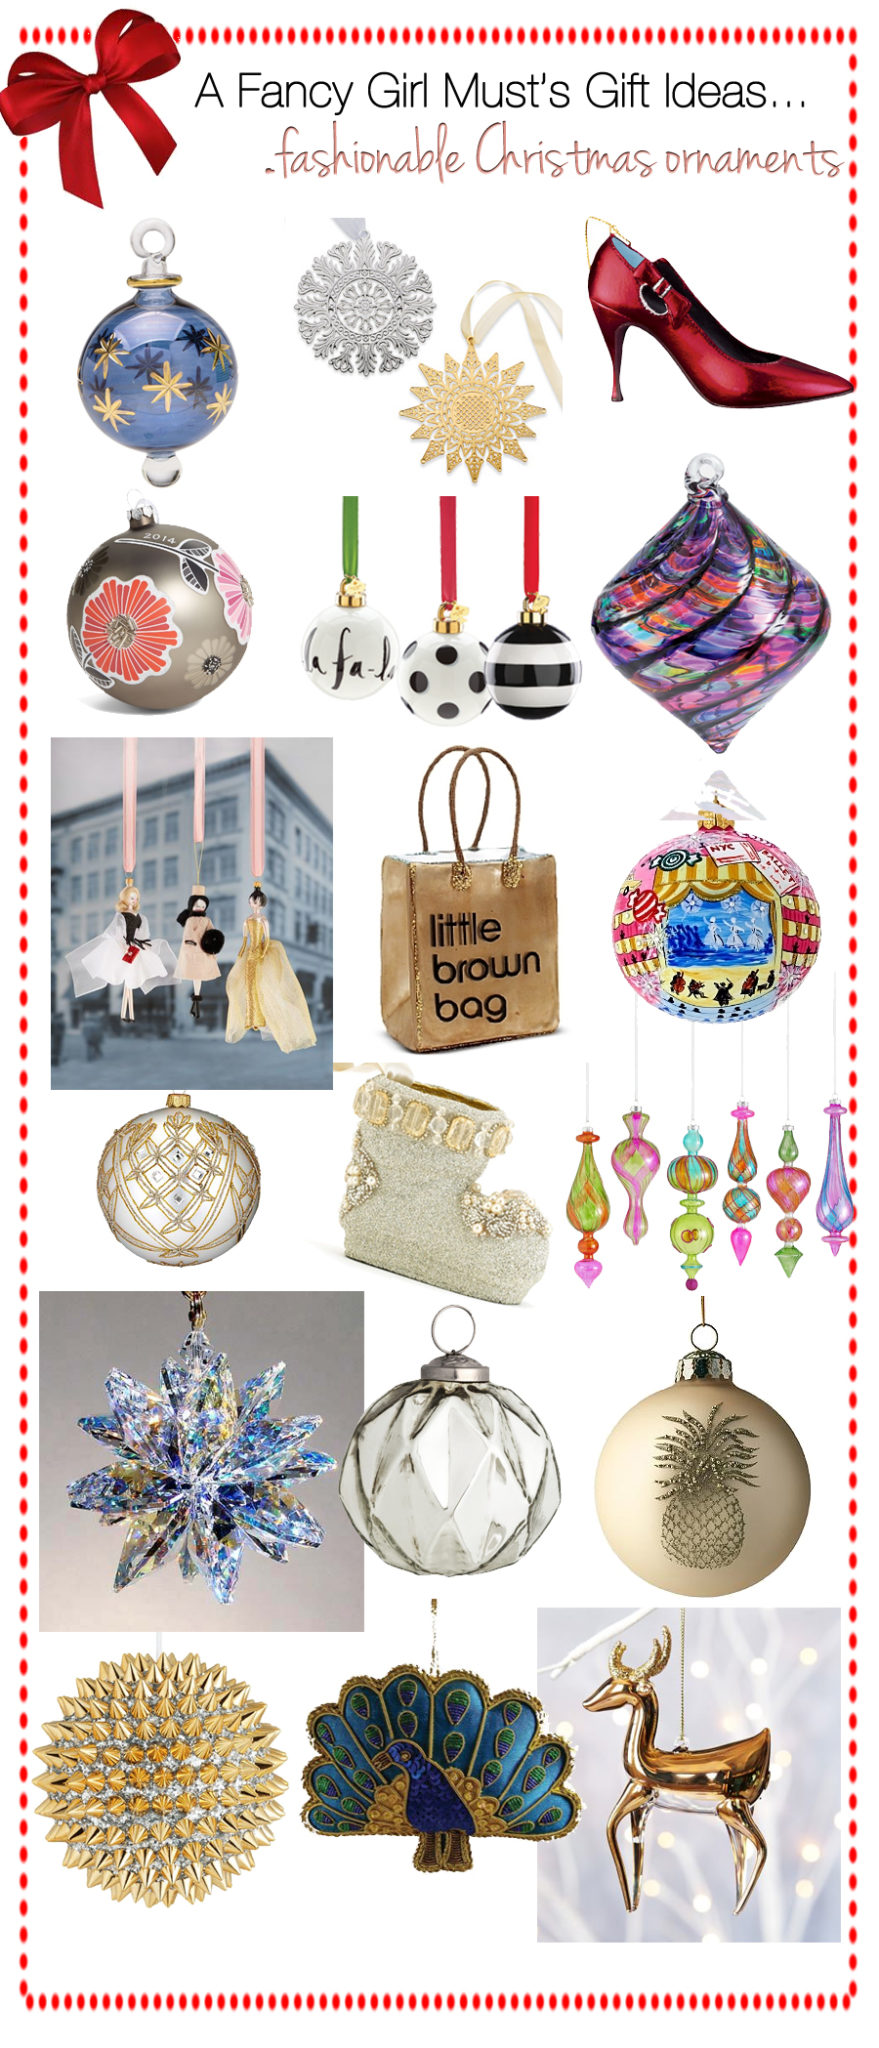 2014 Holiday Gift Guide: Fancy & Unique Christmas Ornaments